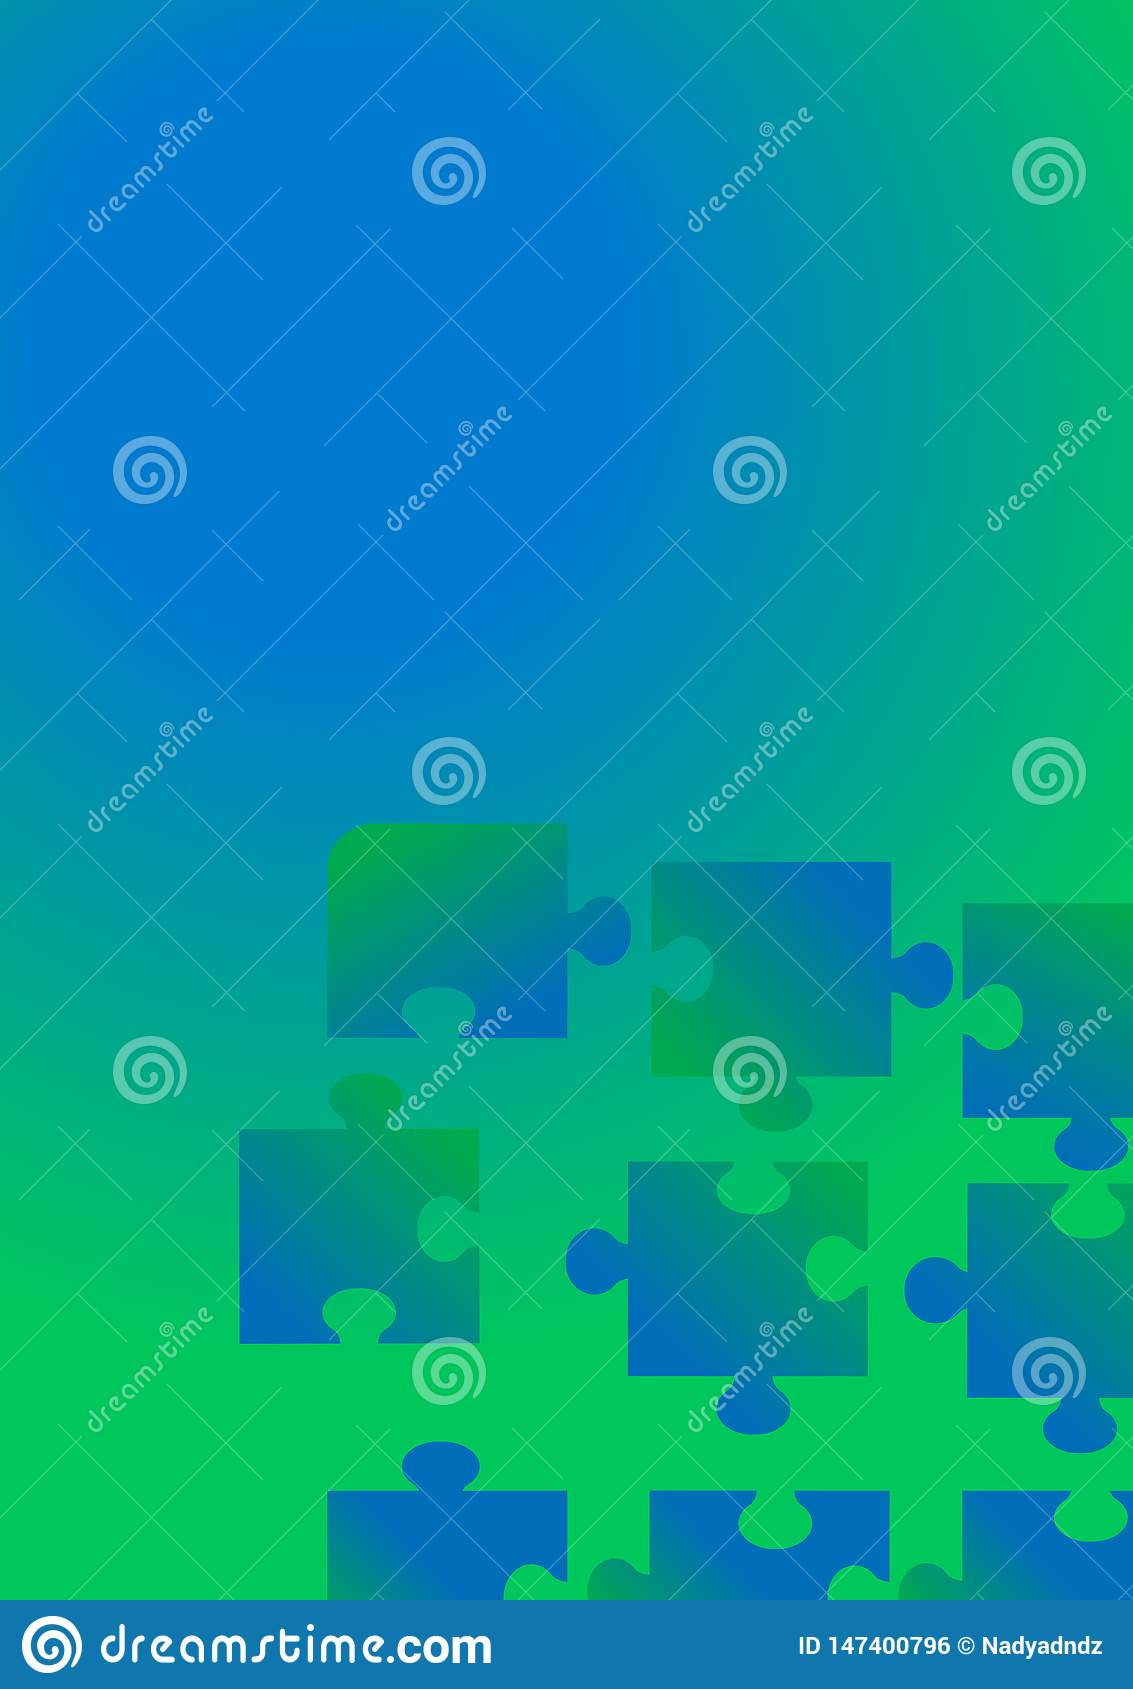 Flat background puzzle for concept design. Technology background.